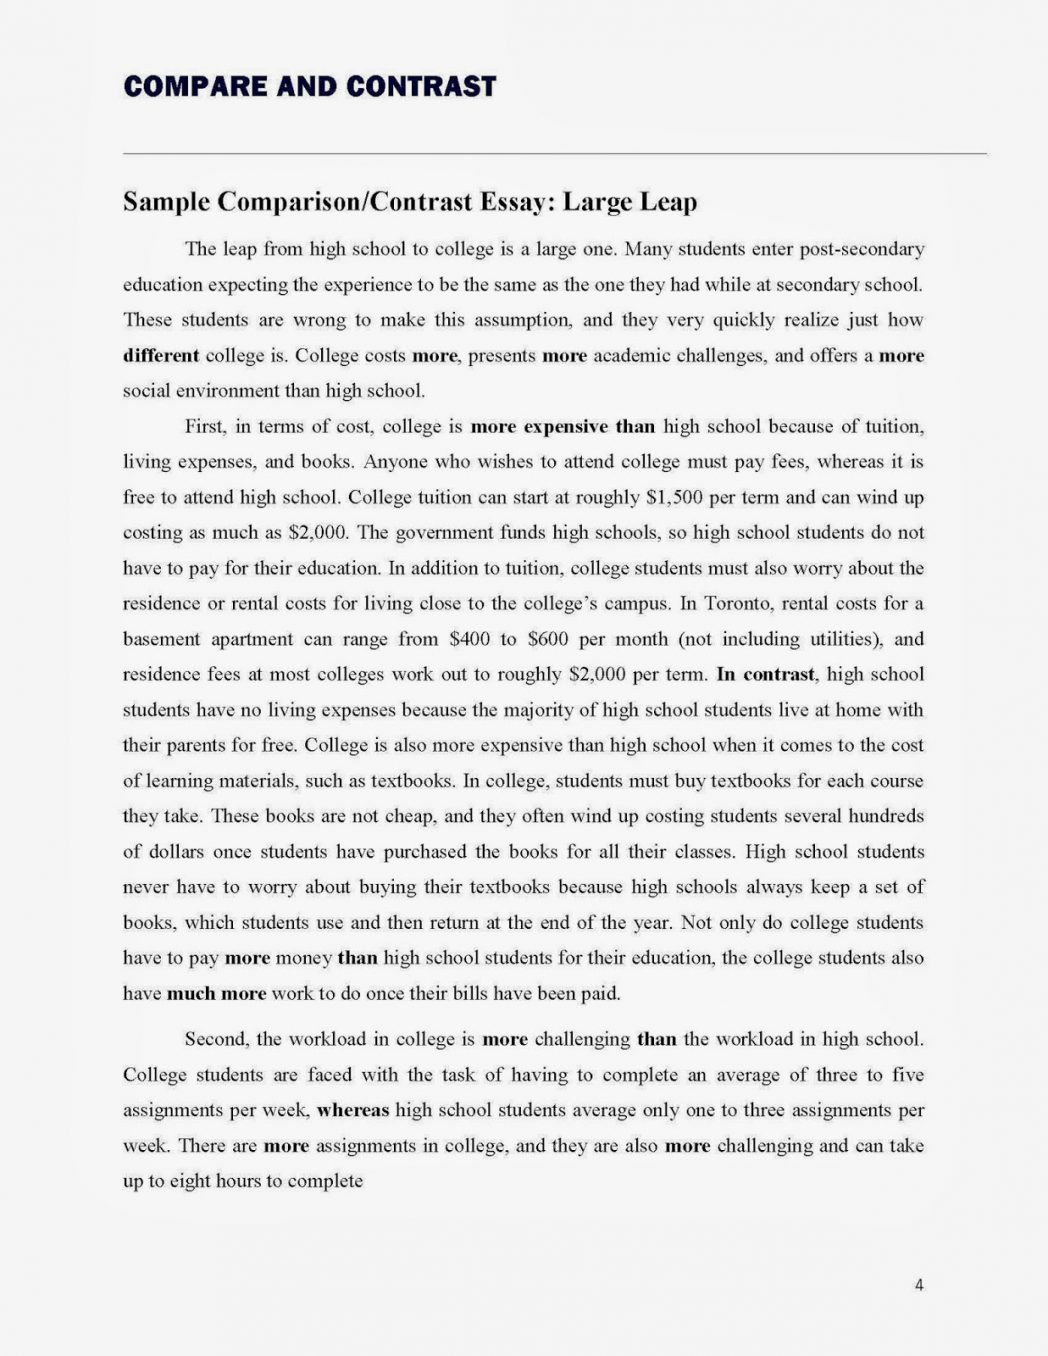 017 Nyu Essay Prompts Prompt Stern Examples Of T Undergraduate Topics Creative 1048x1356 Example Unforgettable Why 2018 Reddit Full